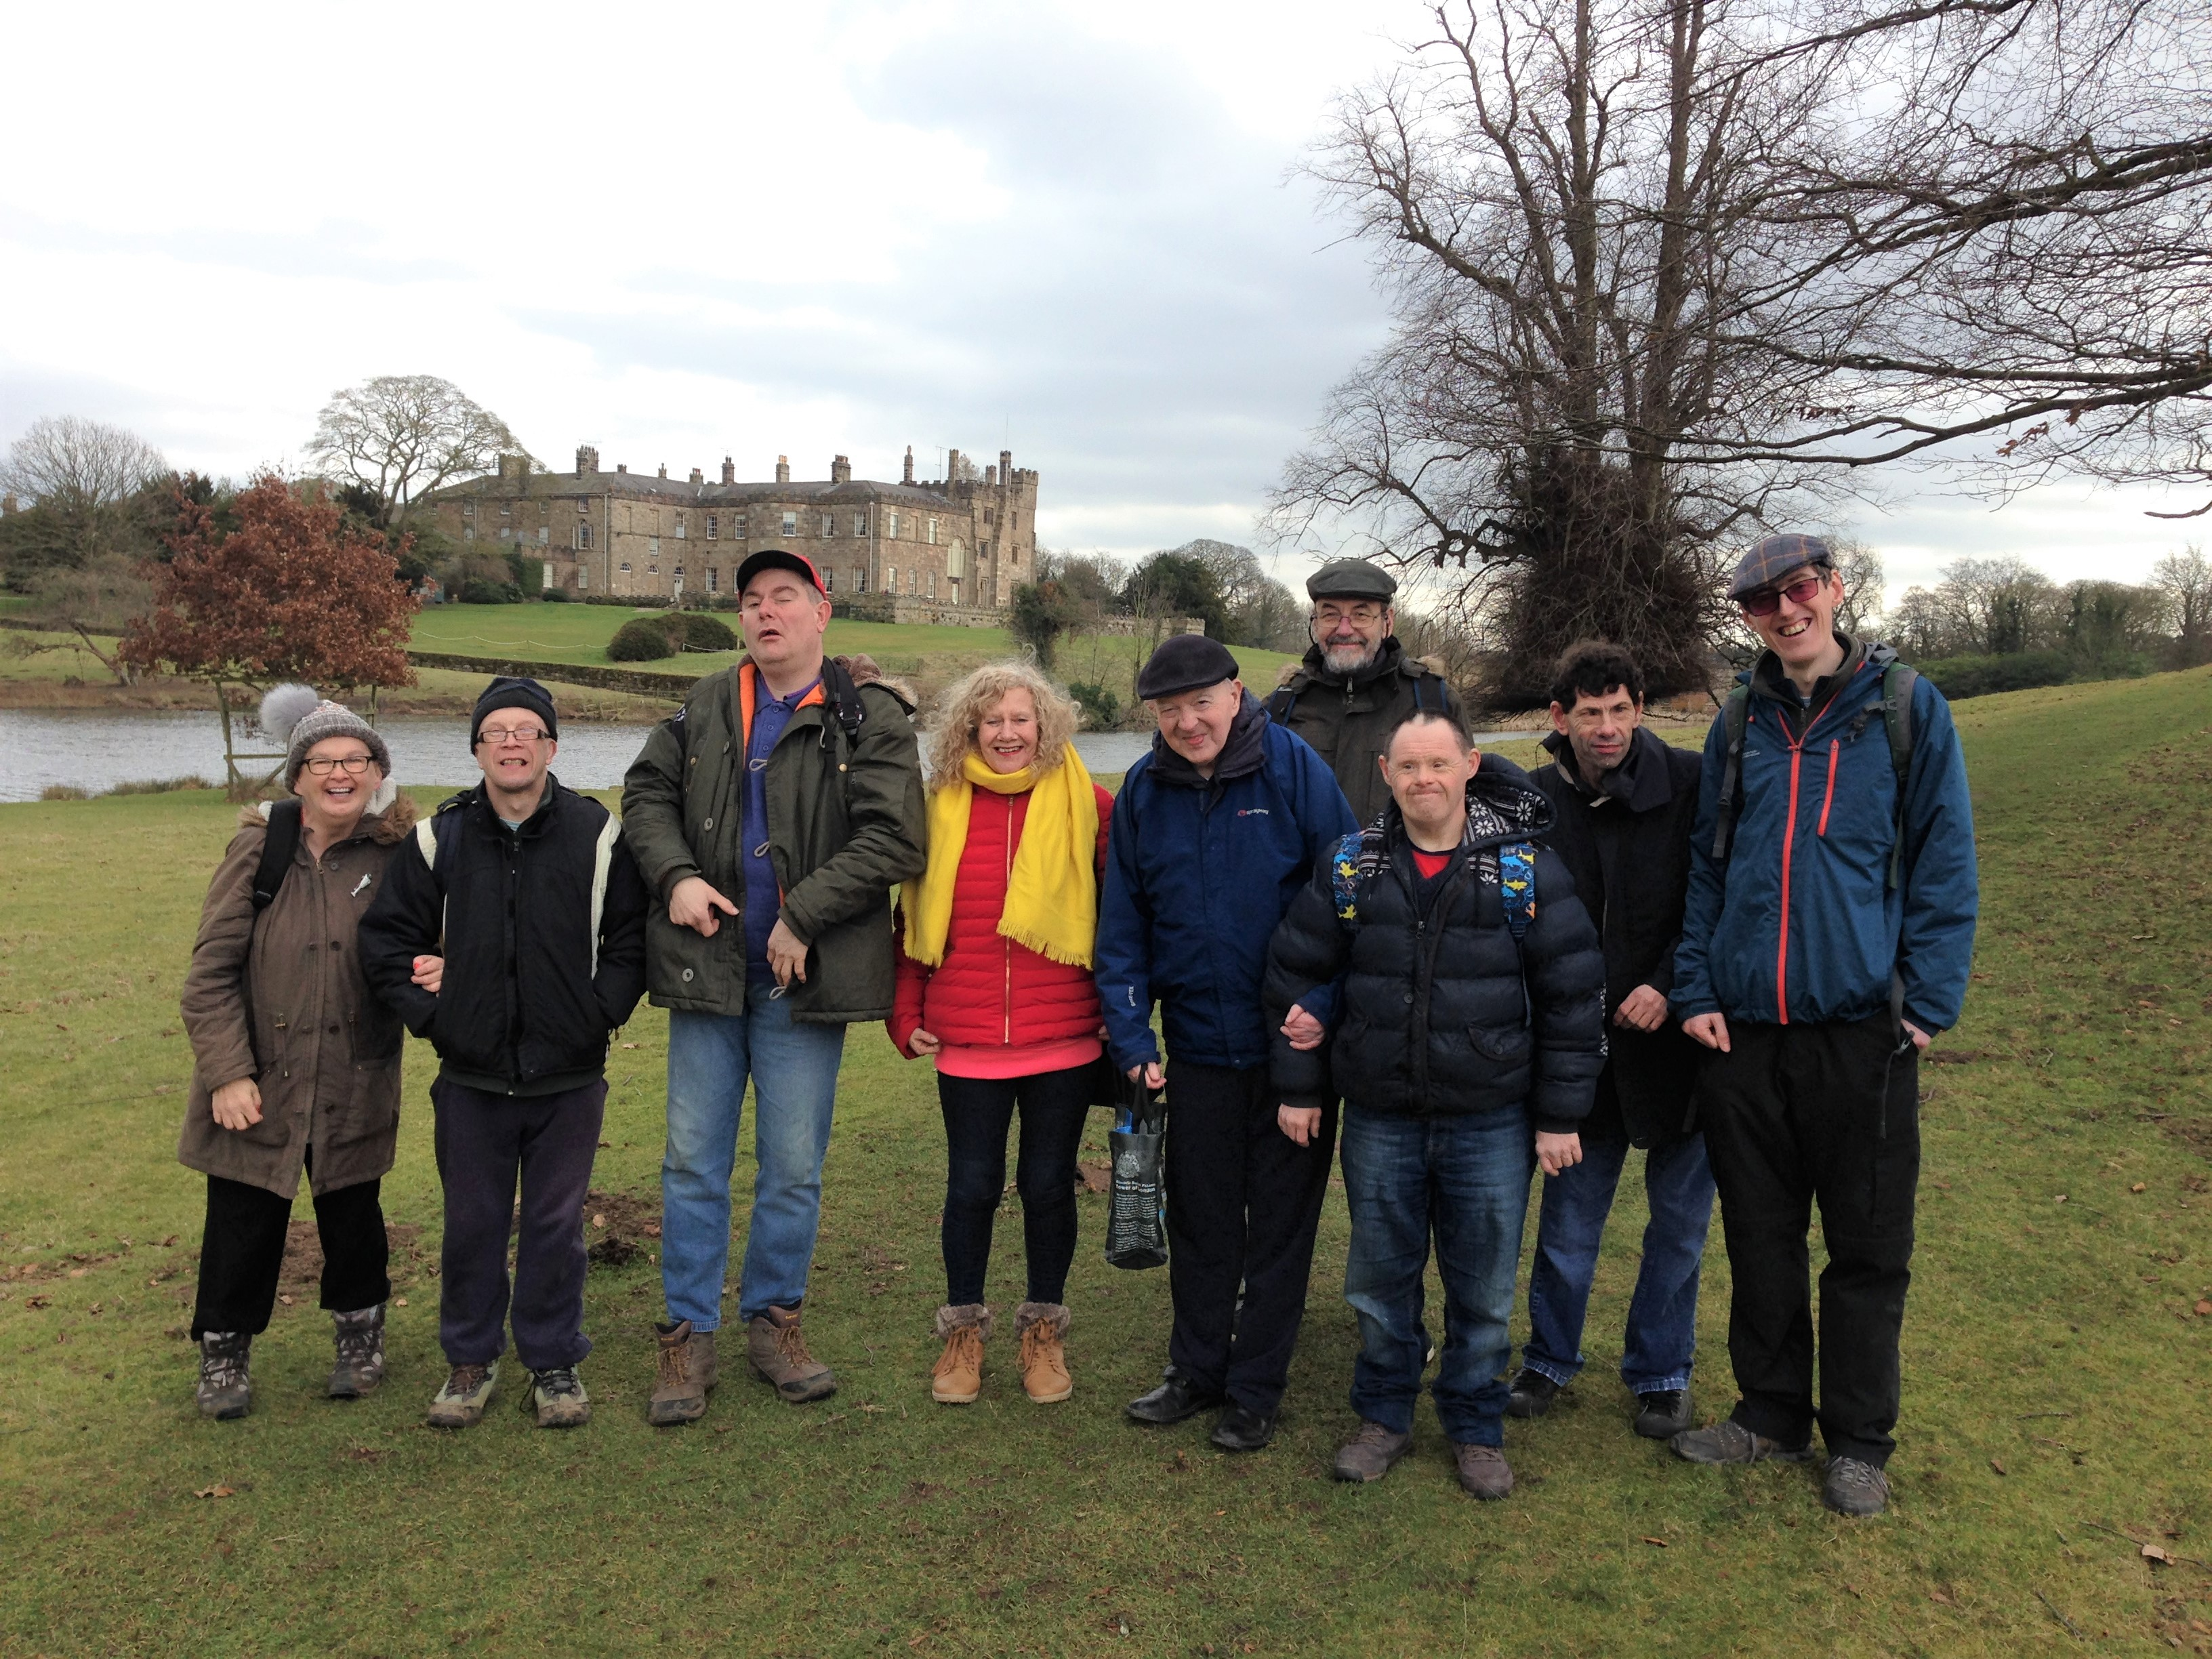 The Wild About Wetherby group sitting on a bench with heathland and trees in the background.